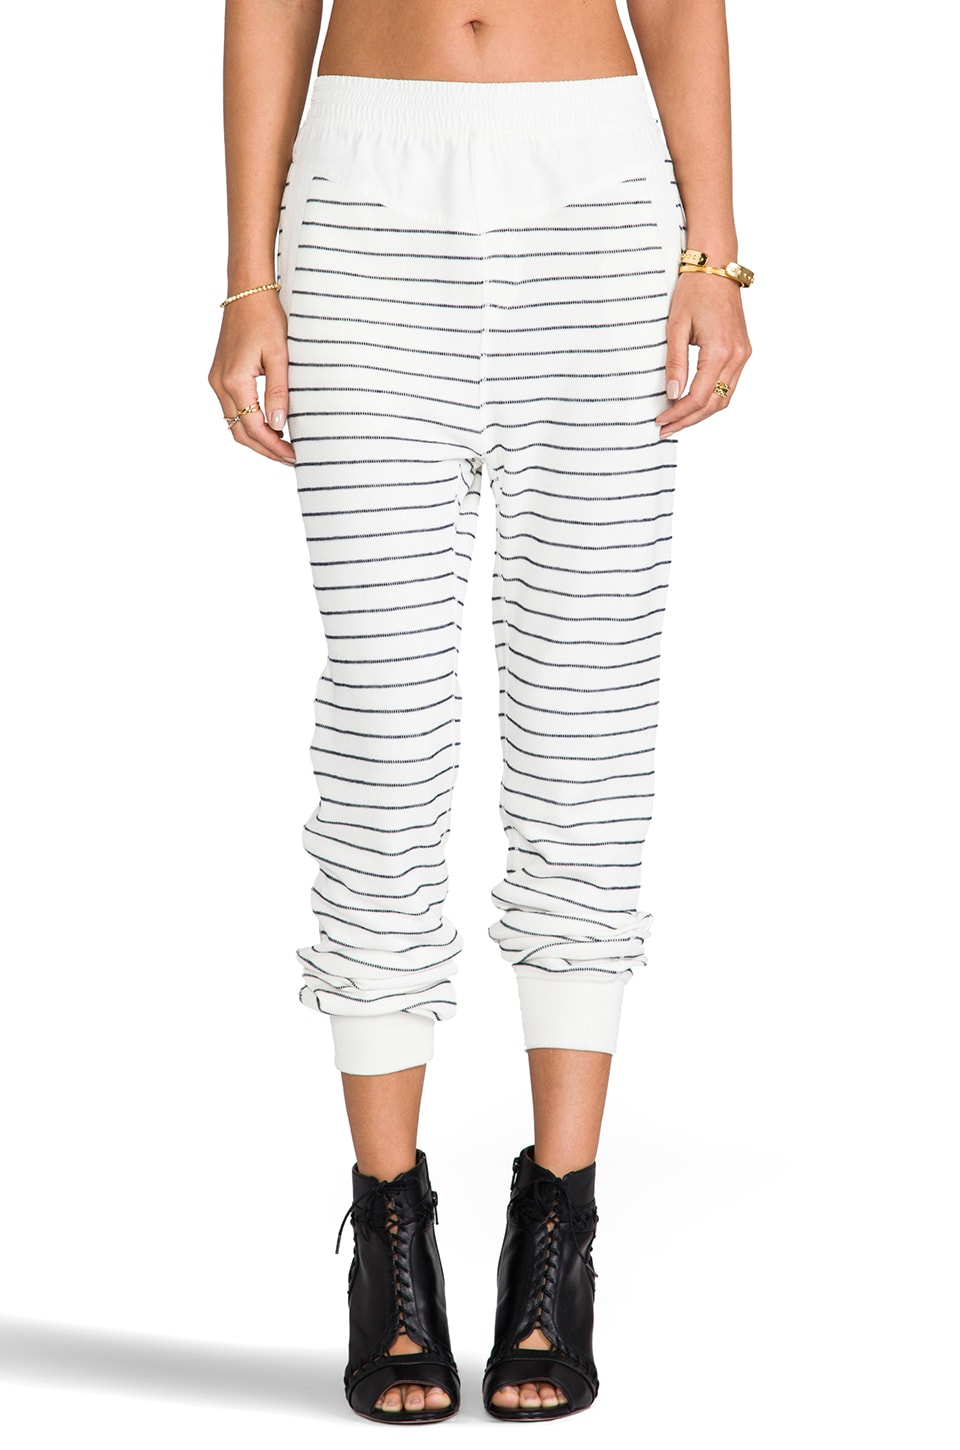 T by Alexander Wang French Rib Long John Sweatpants in Ivory & Onyx